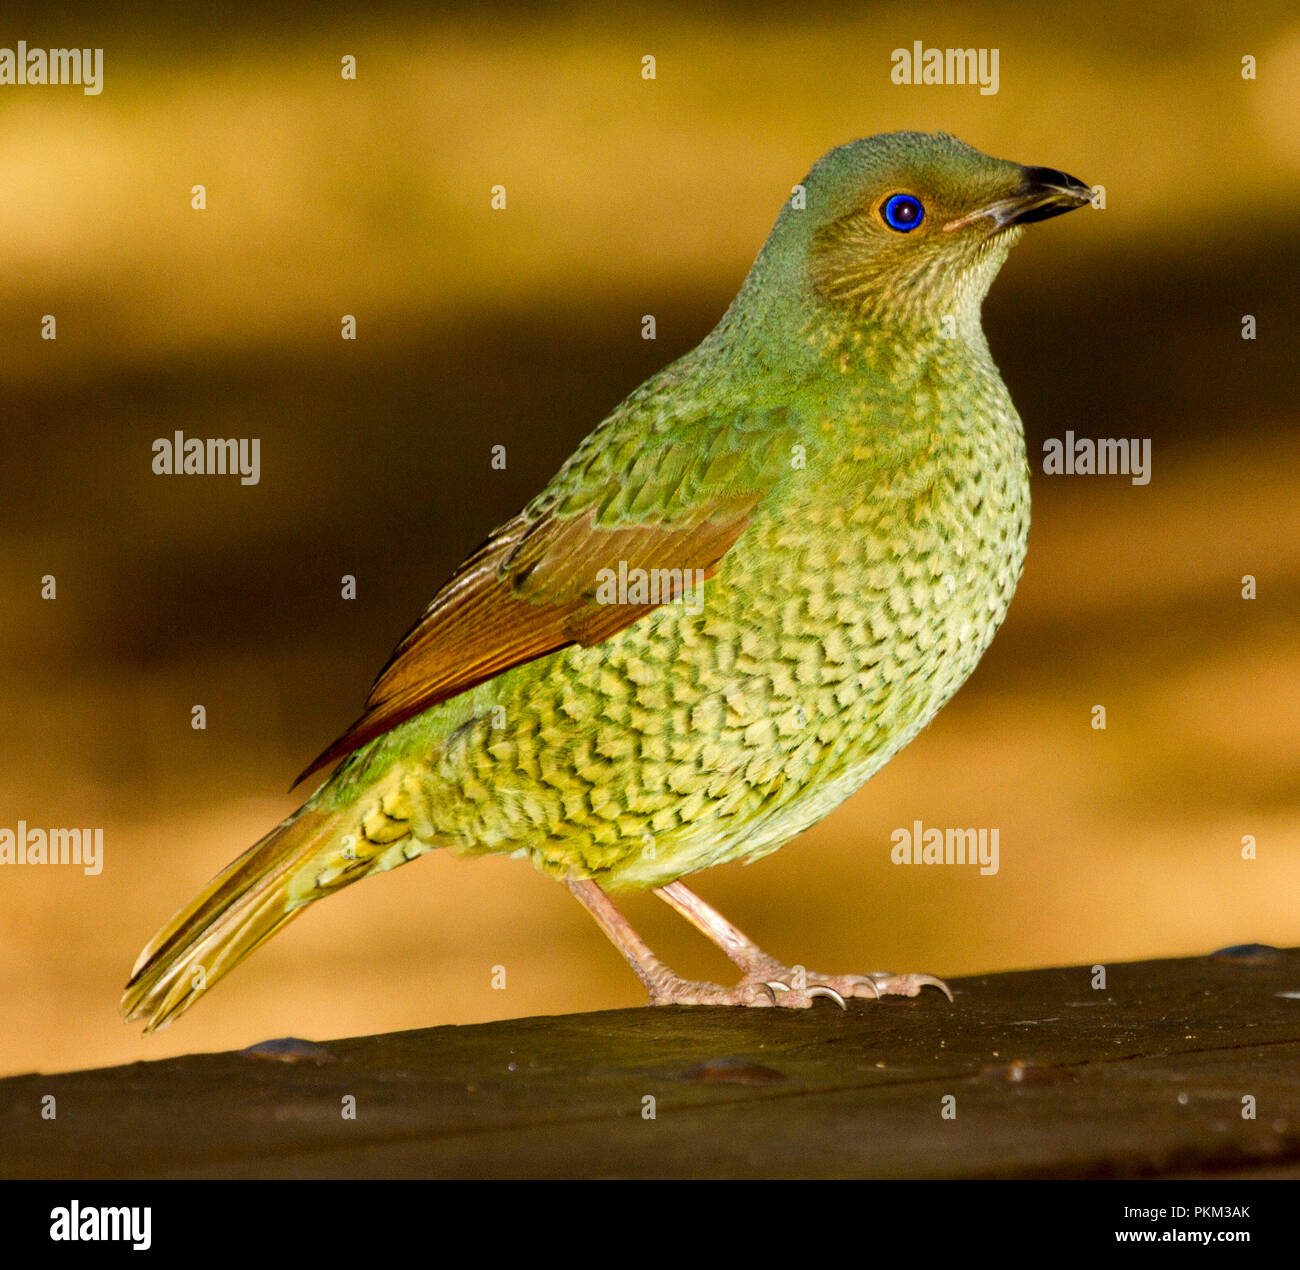 Australian female satin bowerbird, Ptilomorhynchus violaceus, with green plumage for camouflage in forest environment, against light brown background Stock Photo